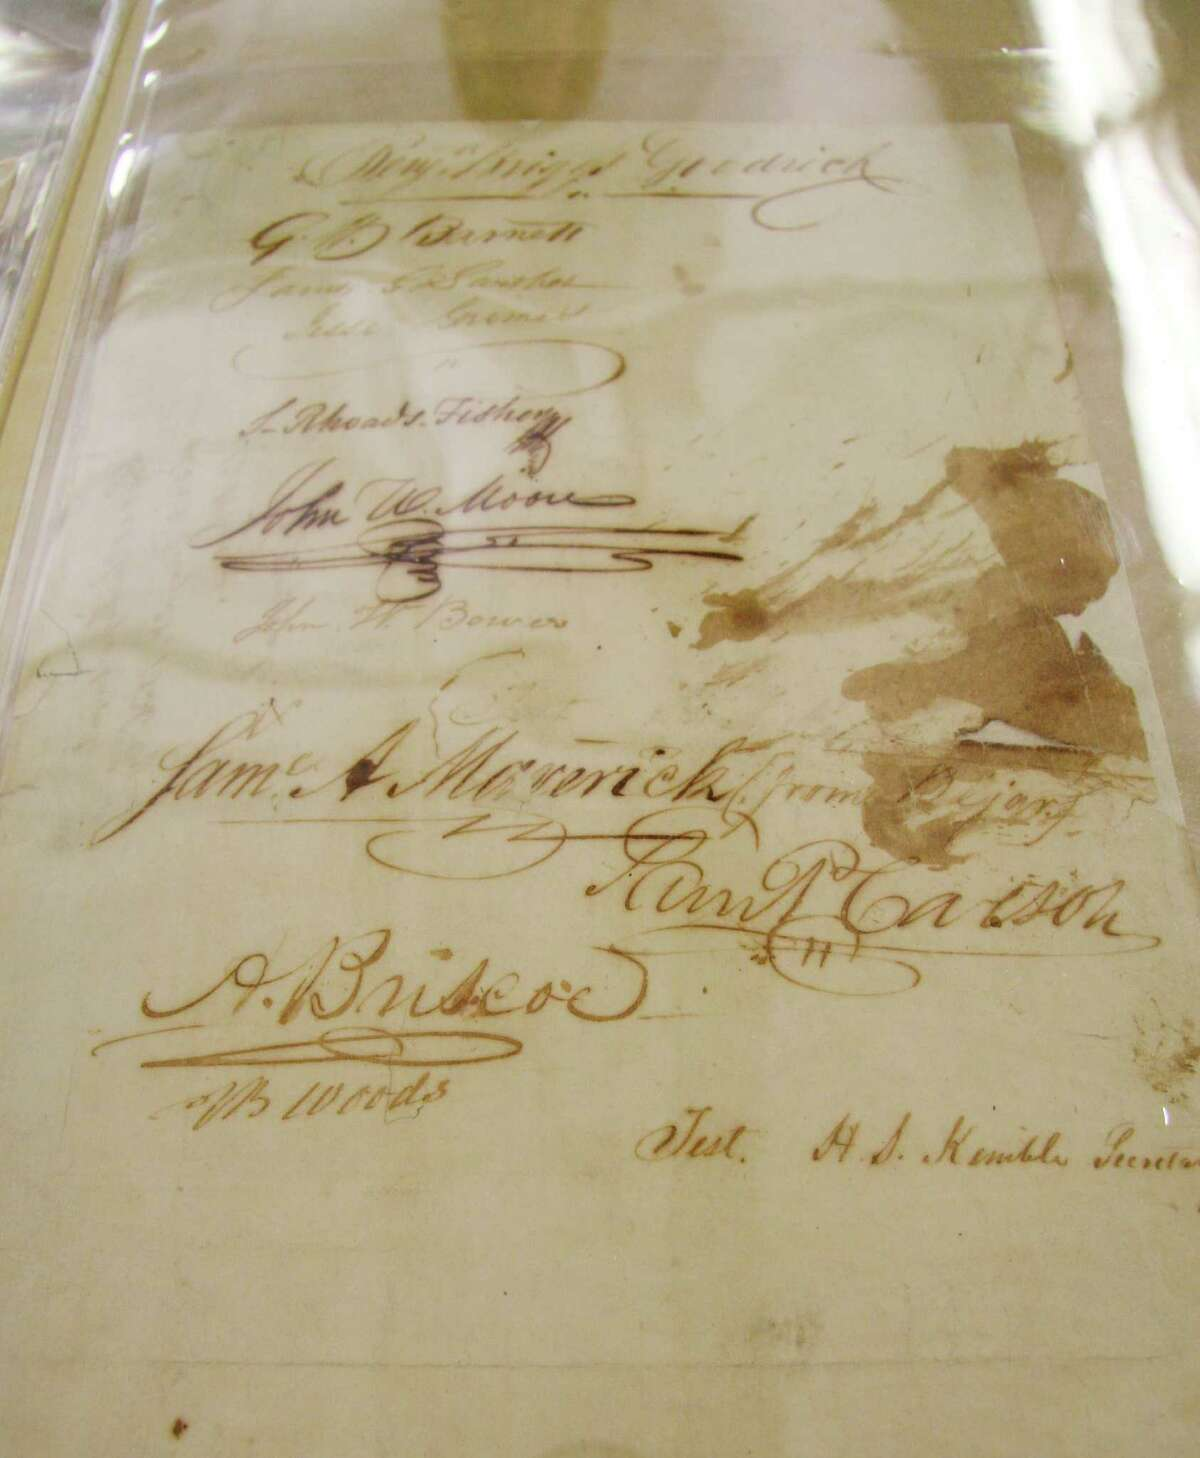 This 2011 file photo shows the last page of the Texas Declaration of Independence, written in 1836 and displayed that year in Austin. Archivists believe the big ink blotch next to the same of Samuel Maverick of San Antonio was caused when someone, perhaps Maverick, knocked over the ink well that was being used by the 59 signers.